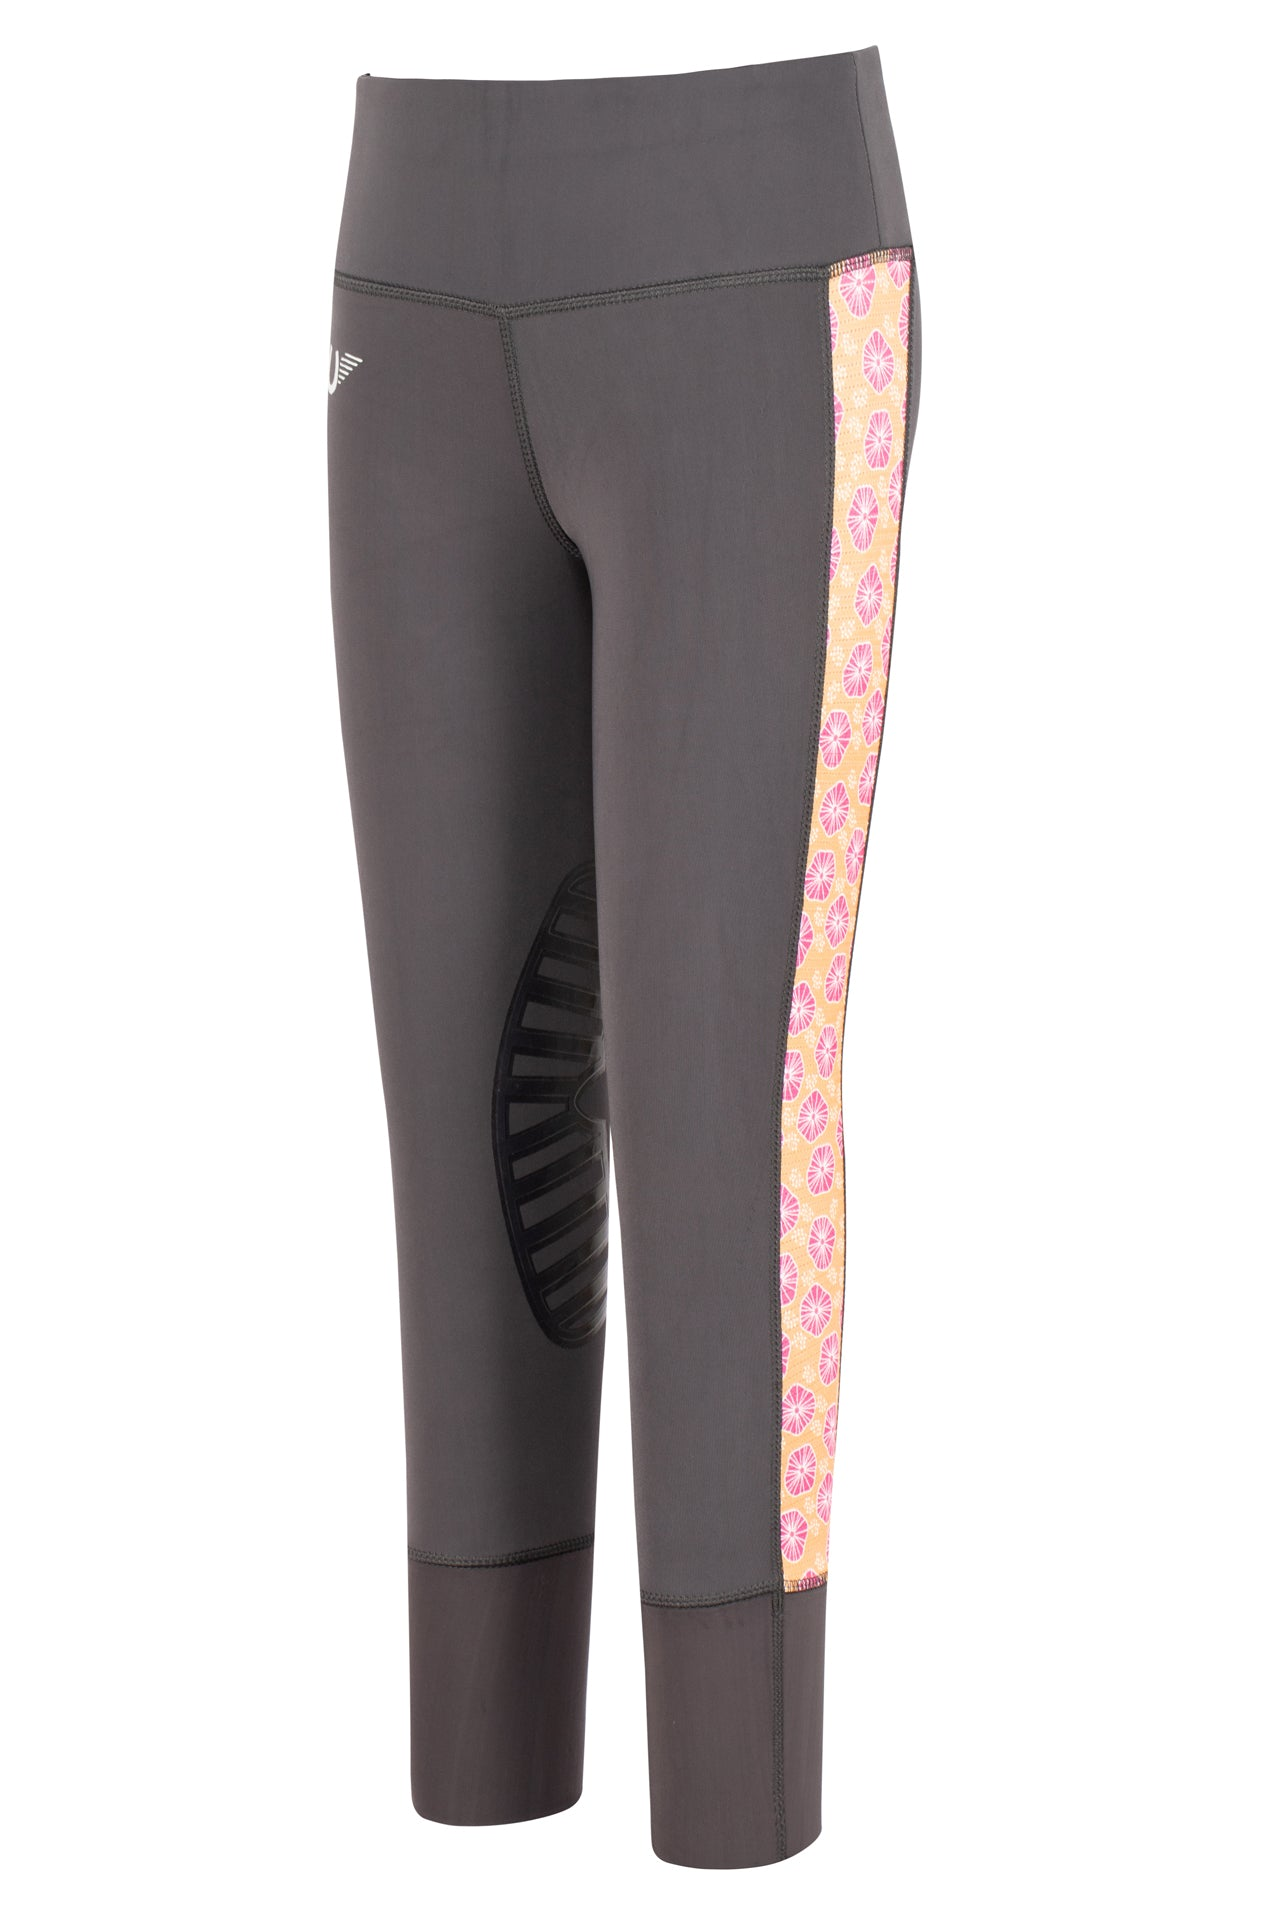 TuffRider Children's Athena EquiCool Riding Tights_1